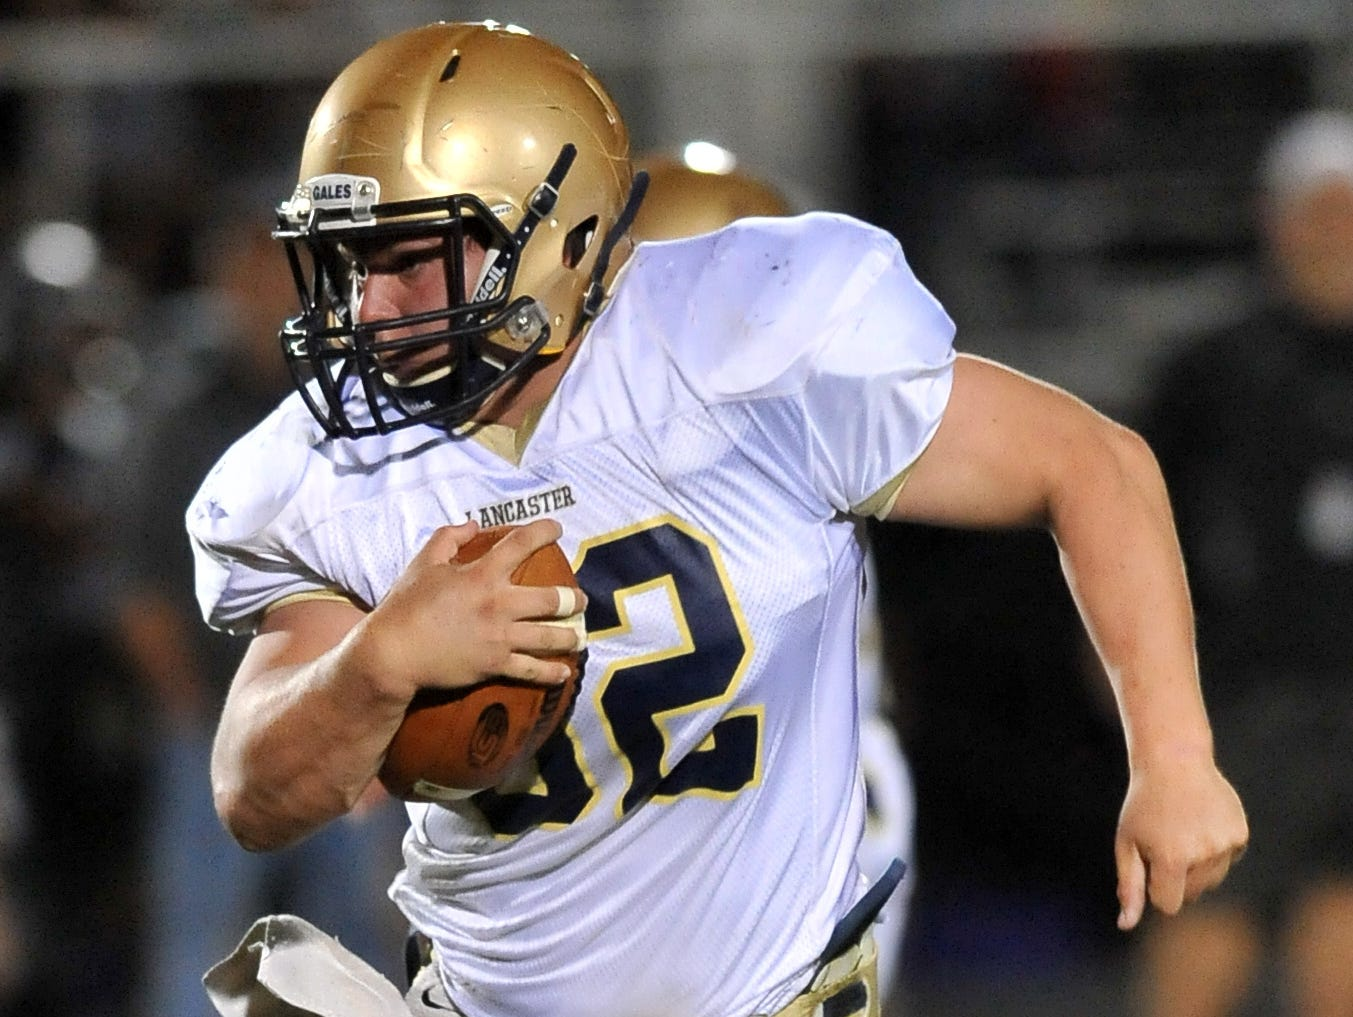 Lancaster senior fullback Ryan Fitchpatrick is the 2015 Eagle-Gazette Offensive Player of the Year.